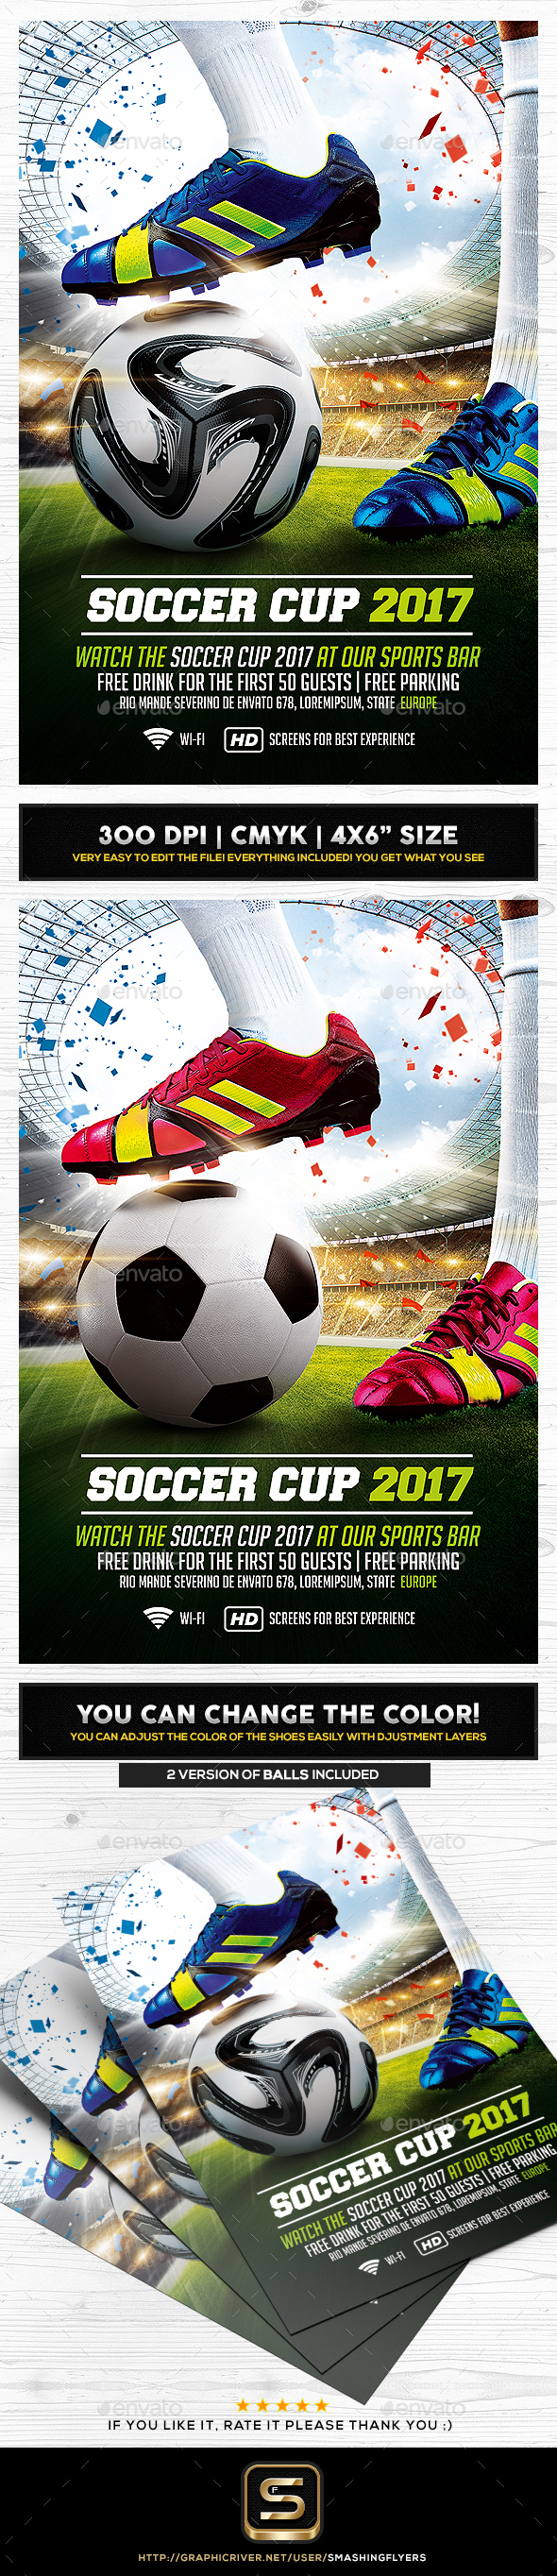 Soccer Cup Flyer Template - Sports Events